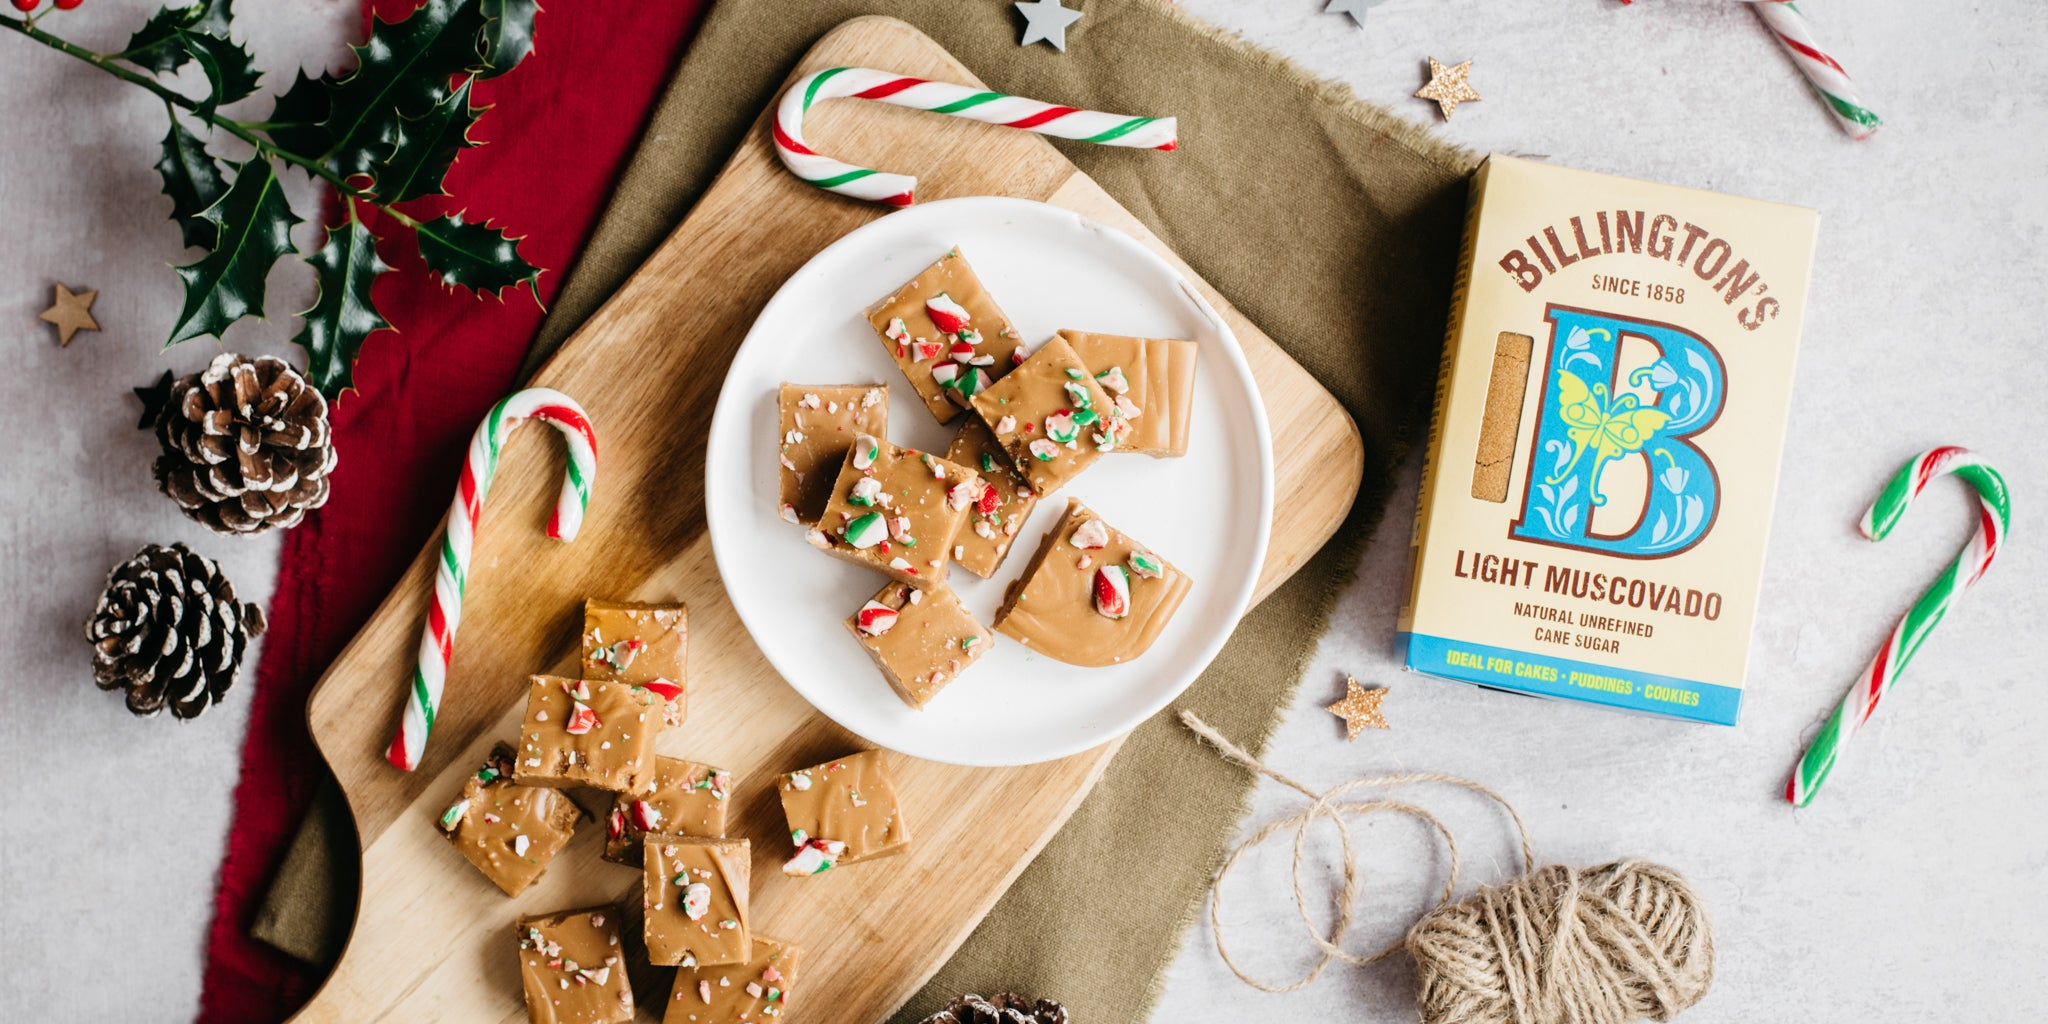 Top view of Billington's Candy Cane Fudge, on a wooden board next to candy canes, pine cones and a box of Billington's Light Muscovado sugar